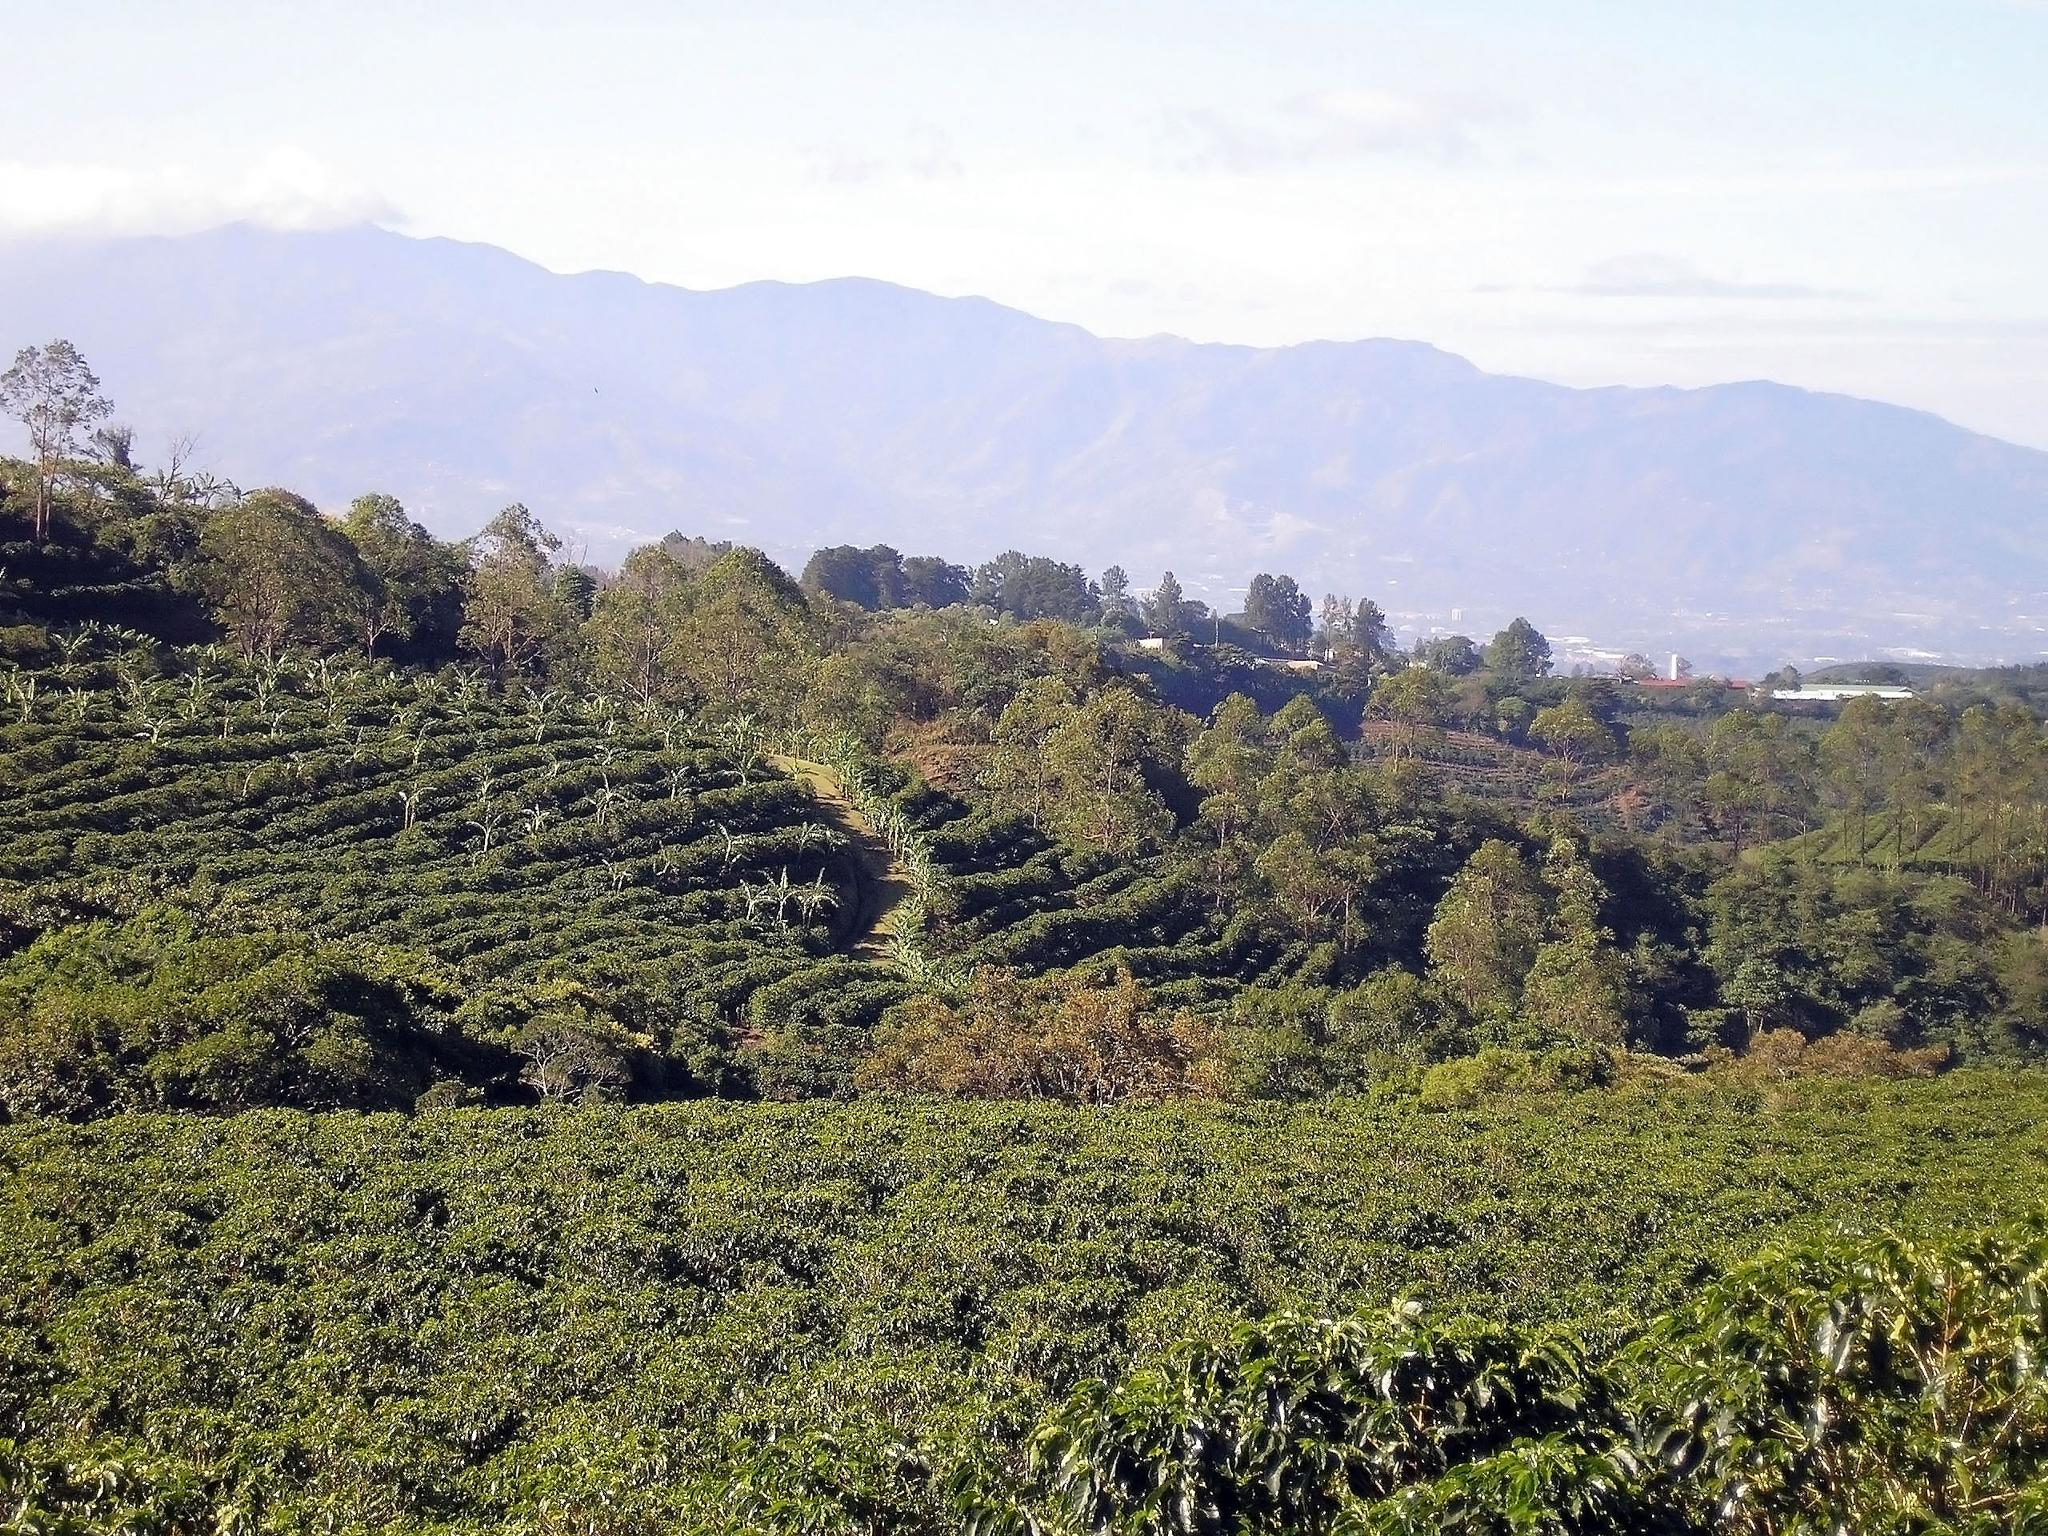 Tour from ship of Coffee plantation by KarynG